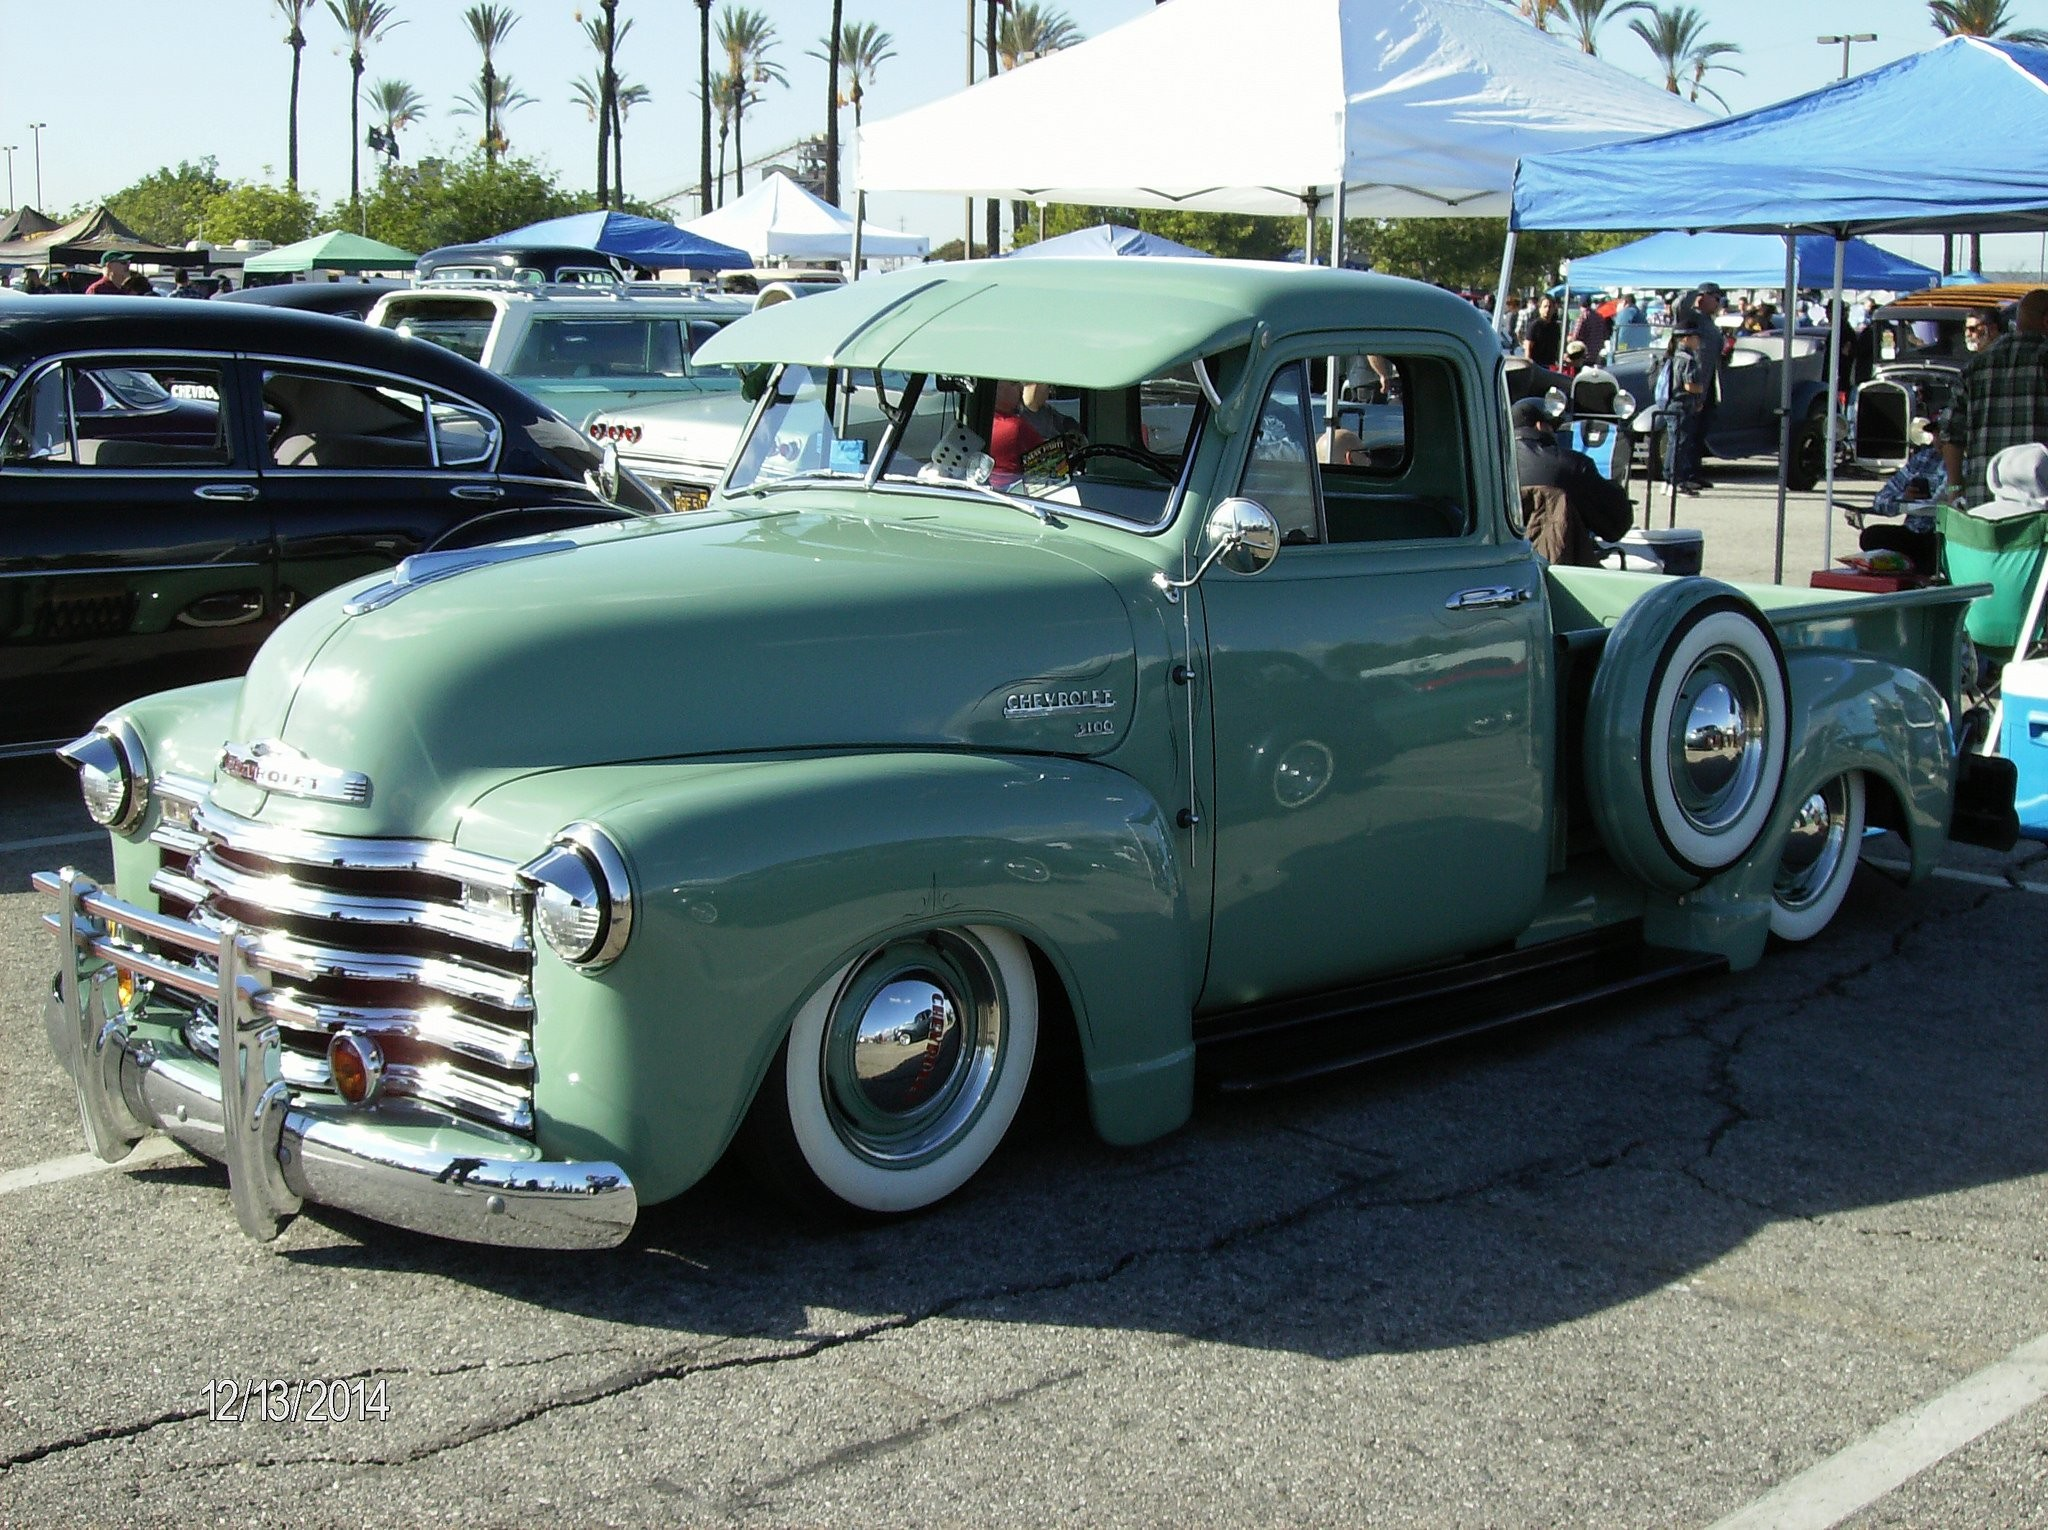 2048x1530 Chevrolet chevy old classic custom cars truck Pickup wallpaper |   | 678468 | WallpaperUP